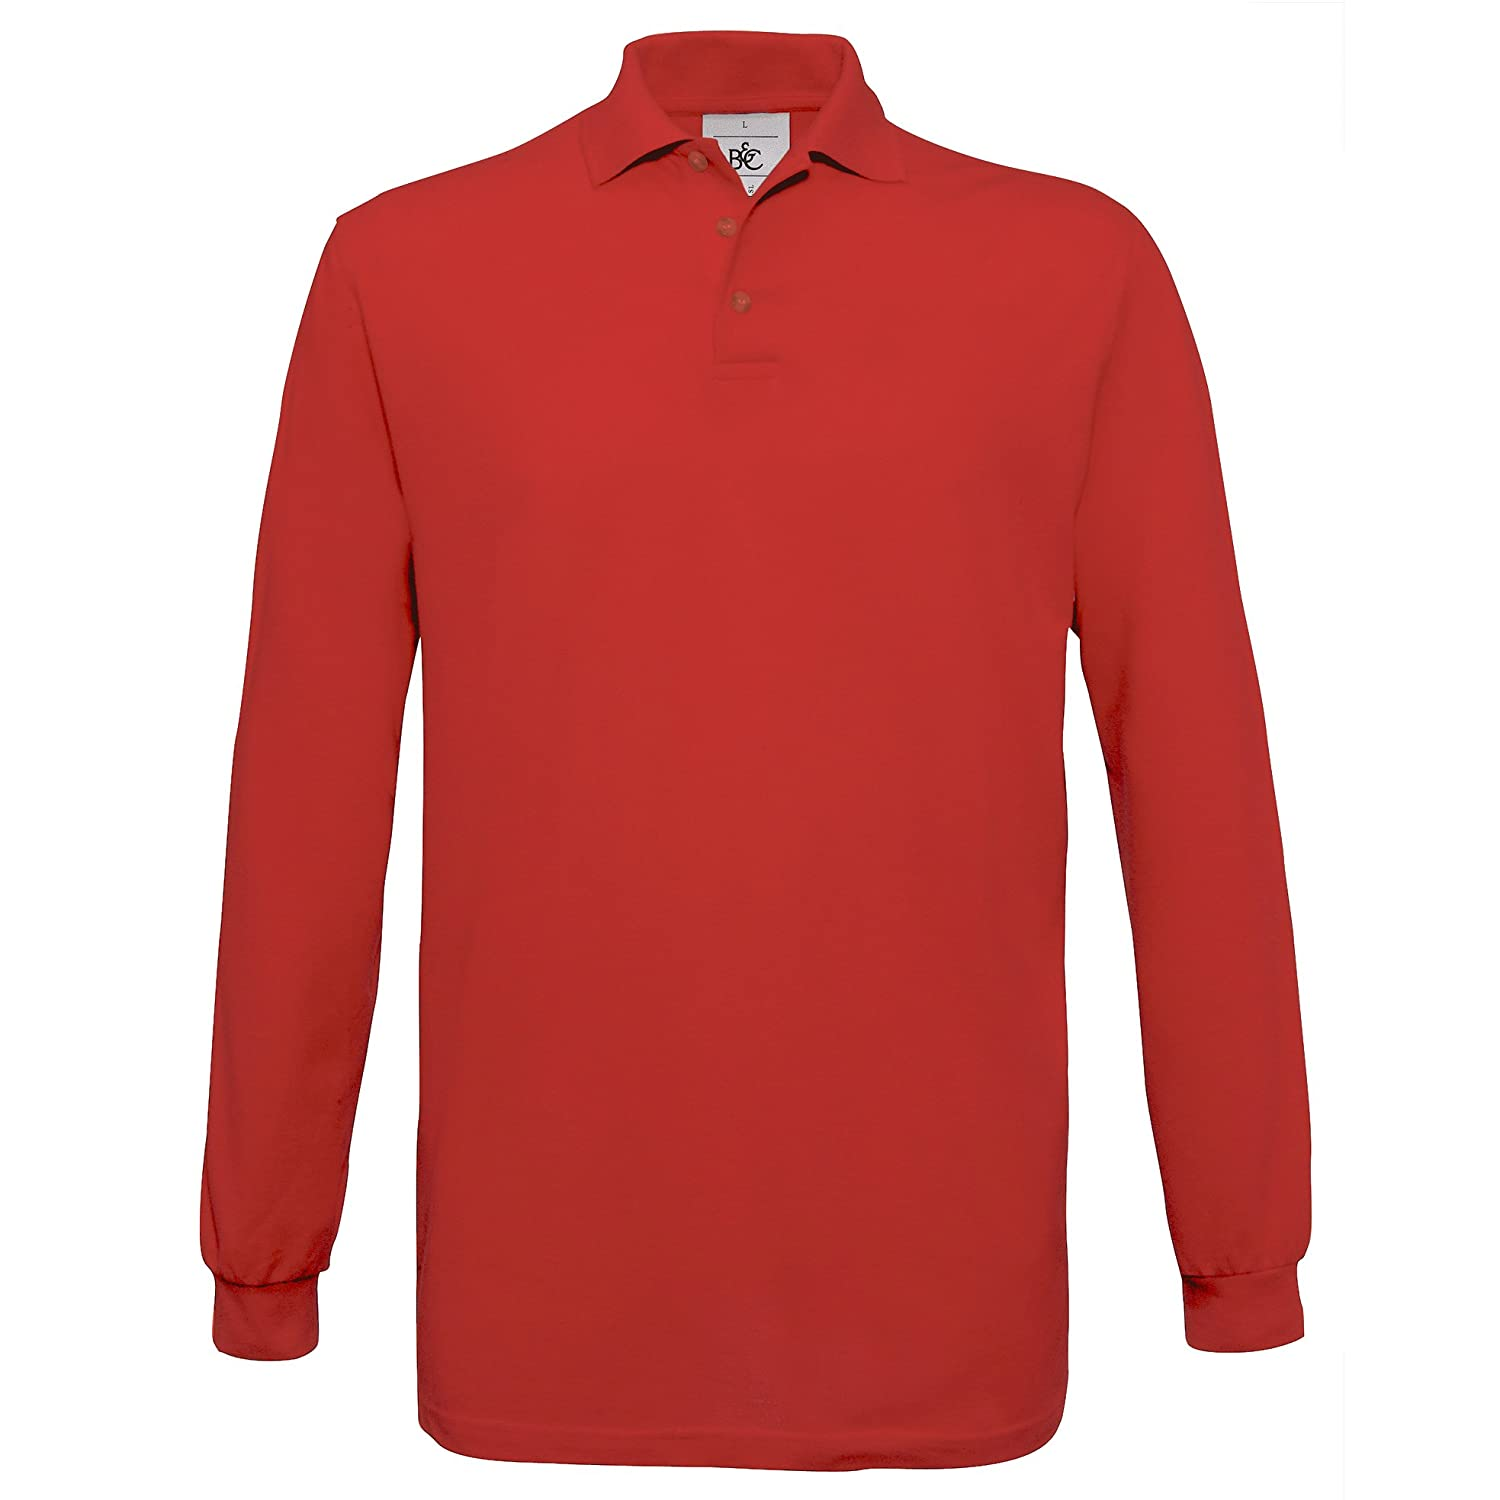 B&C Mens Safran Long Sleeve Cotton Polo Shirt